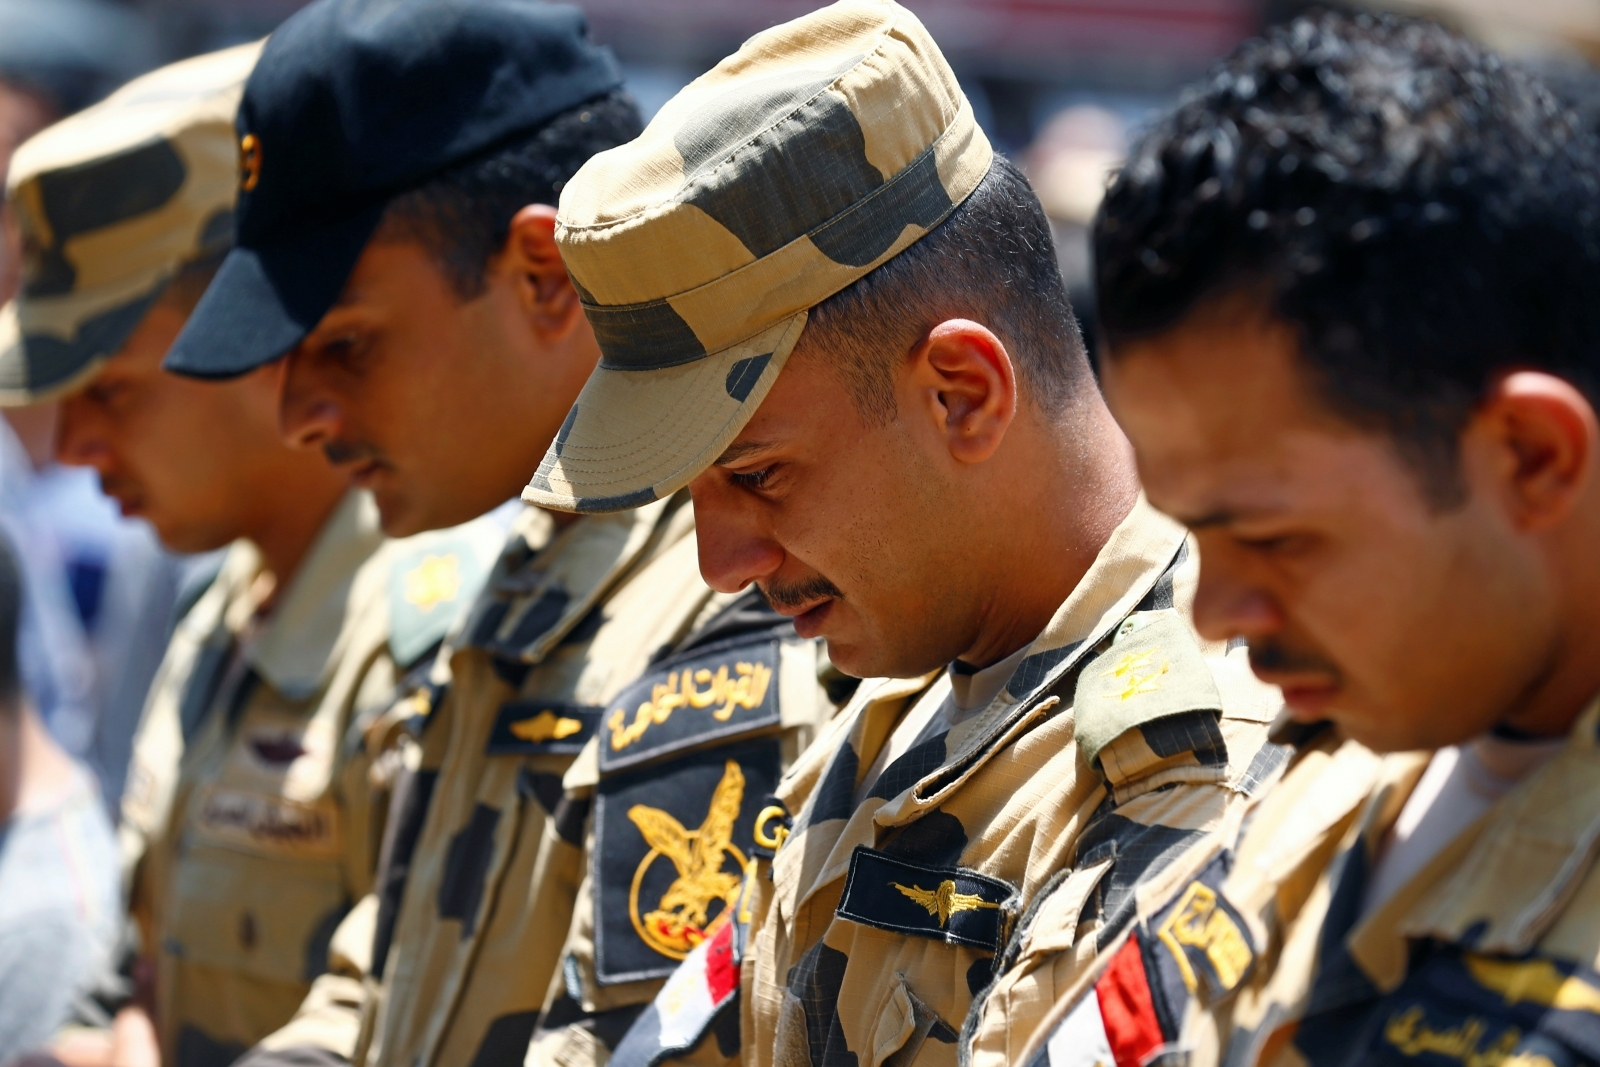 North Sinai Bombing Kills at Least 15 Egypt Security Personnel